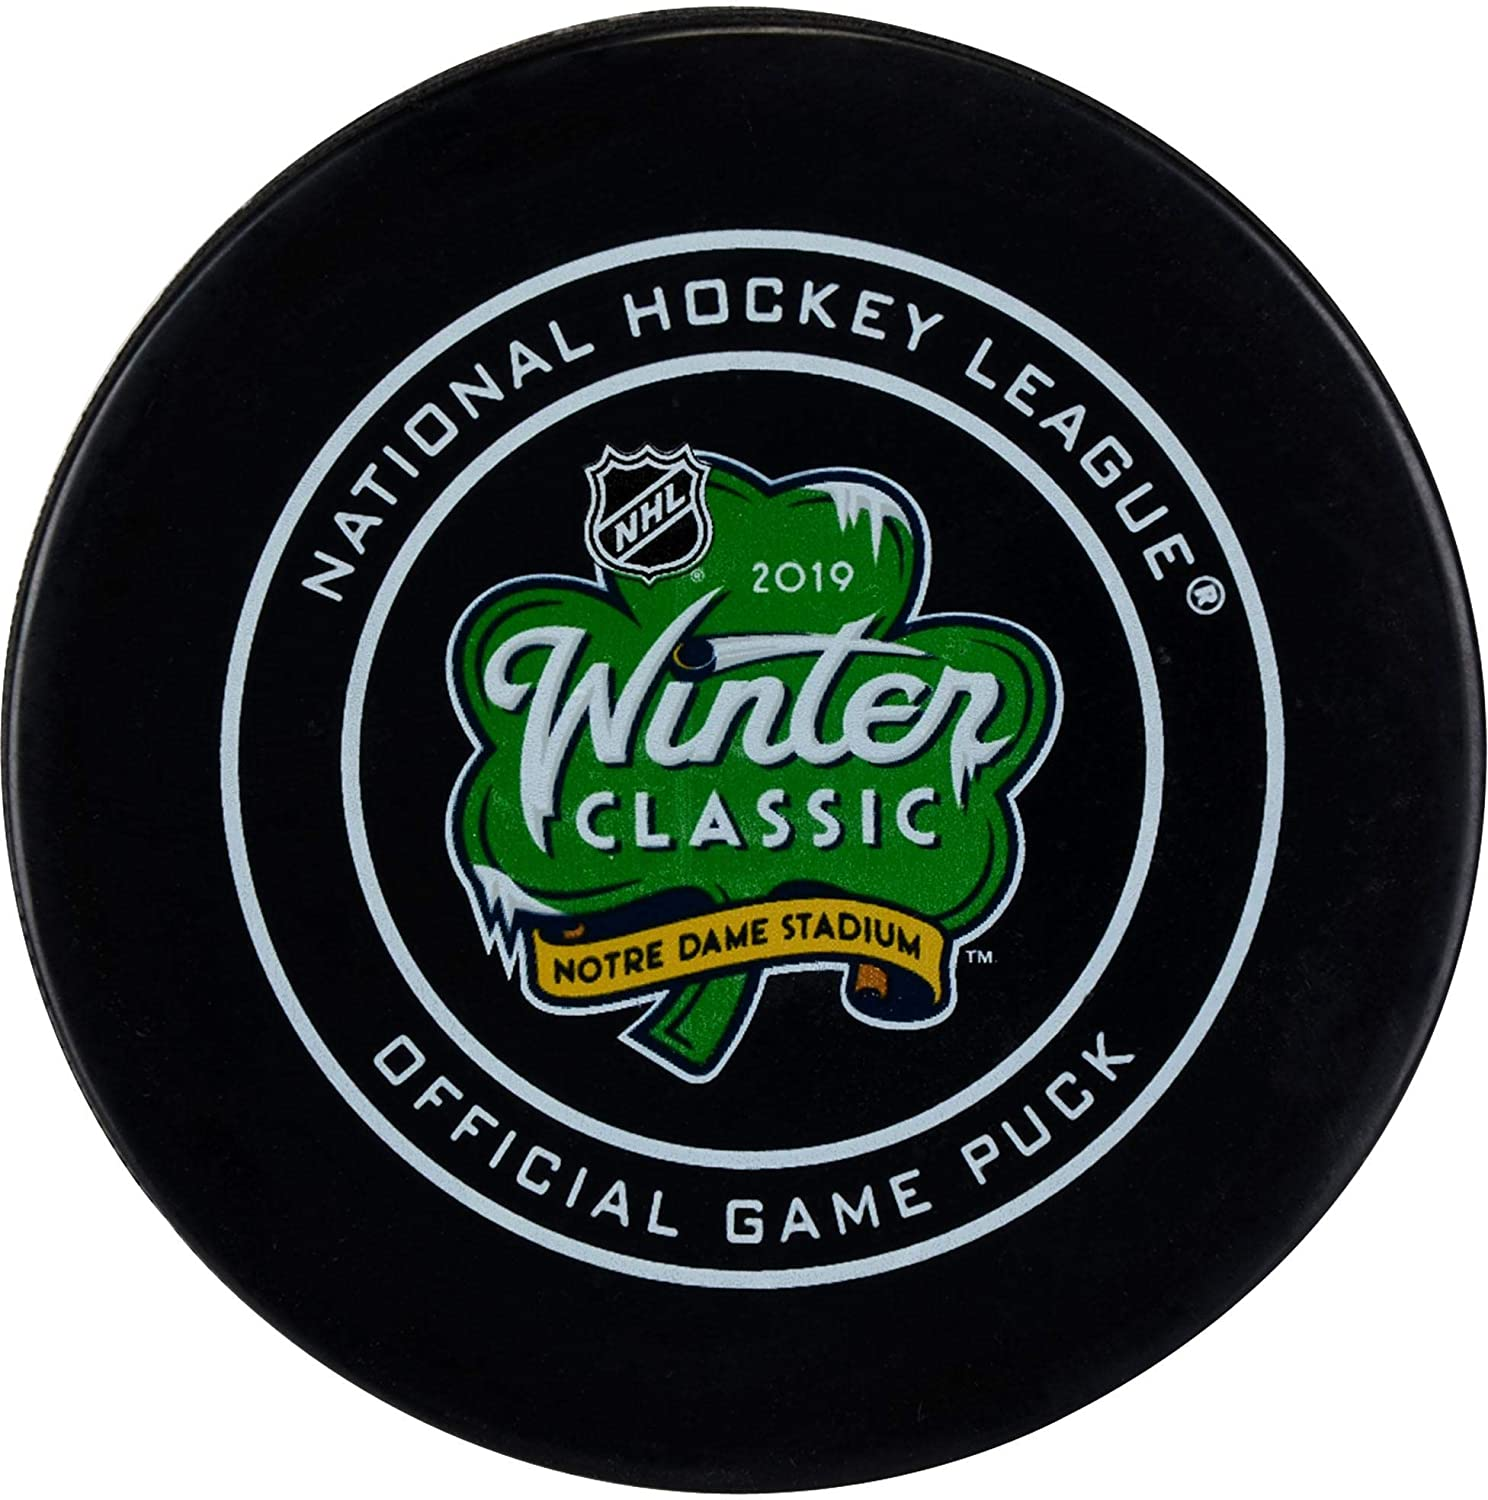 Chicago Blackhawks vs. Boston Bruins 2019 NHL Winter Classic Unsigned Official Game Puck - Fanatics Authentic Certified